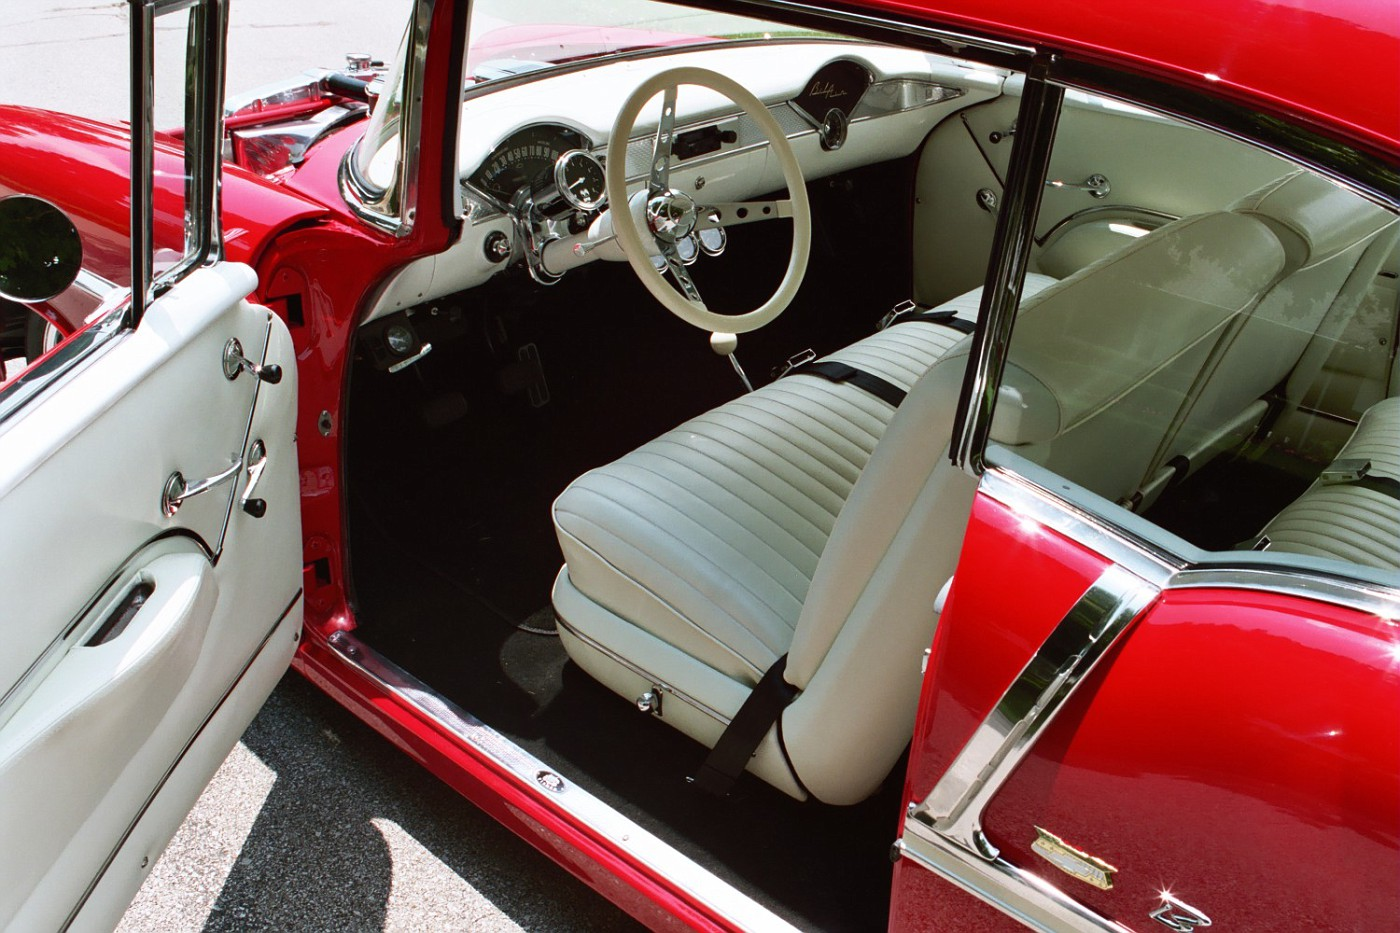 Photo: 55 Chevy Old Style Interior | 1955 Chevy Bel Air Sport ...